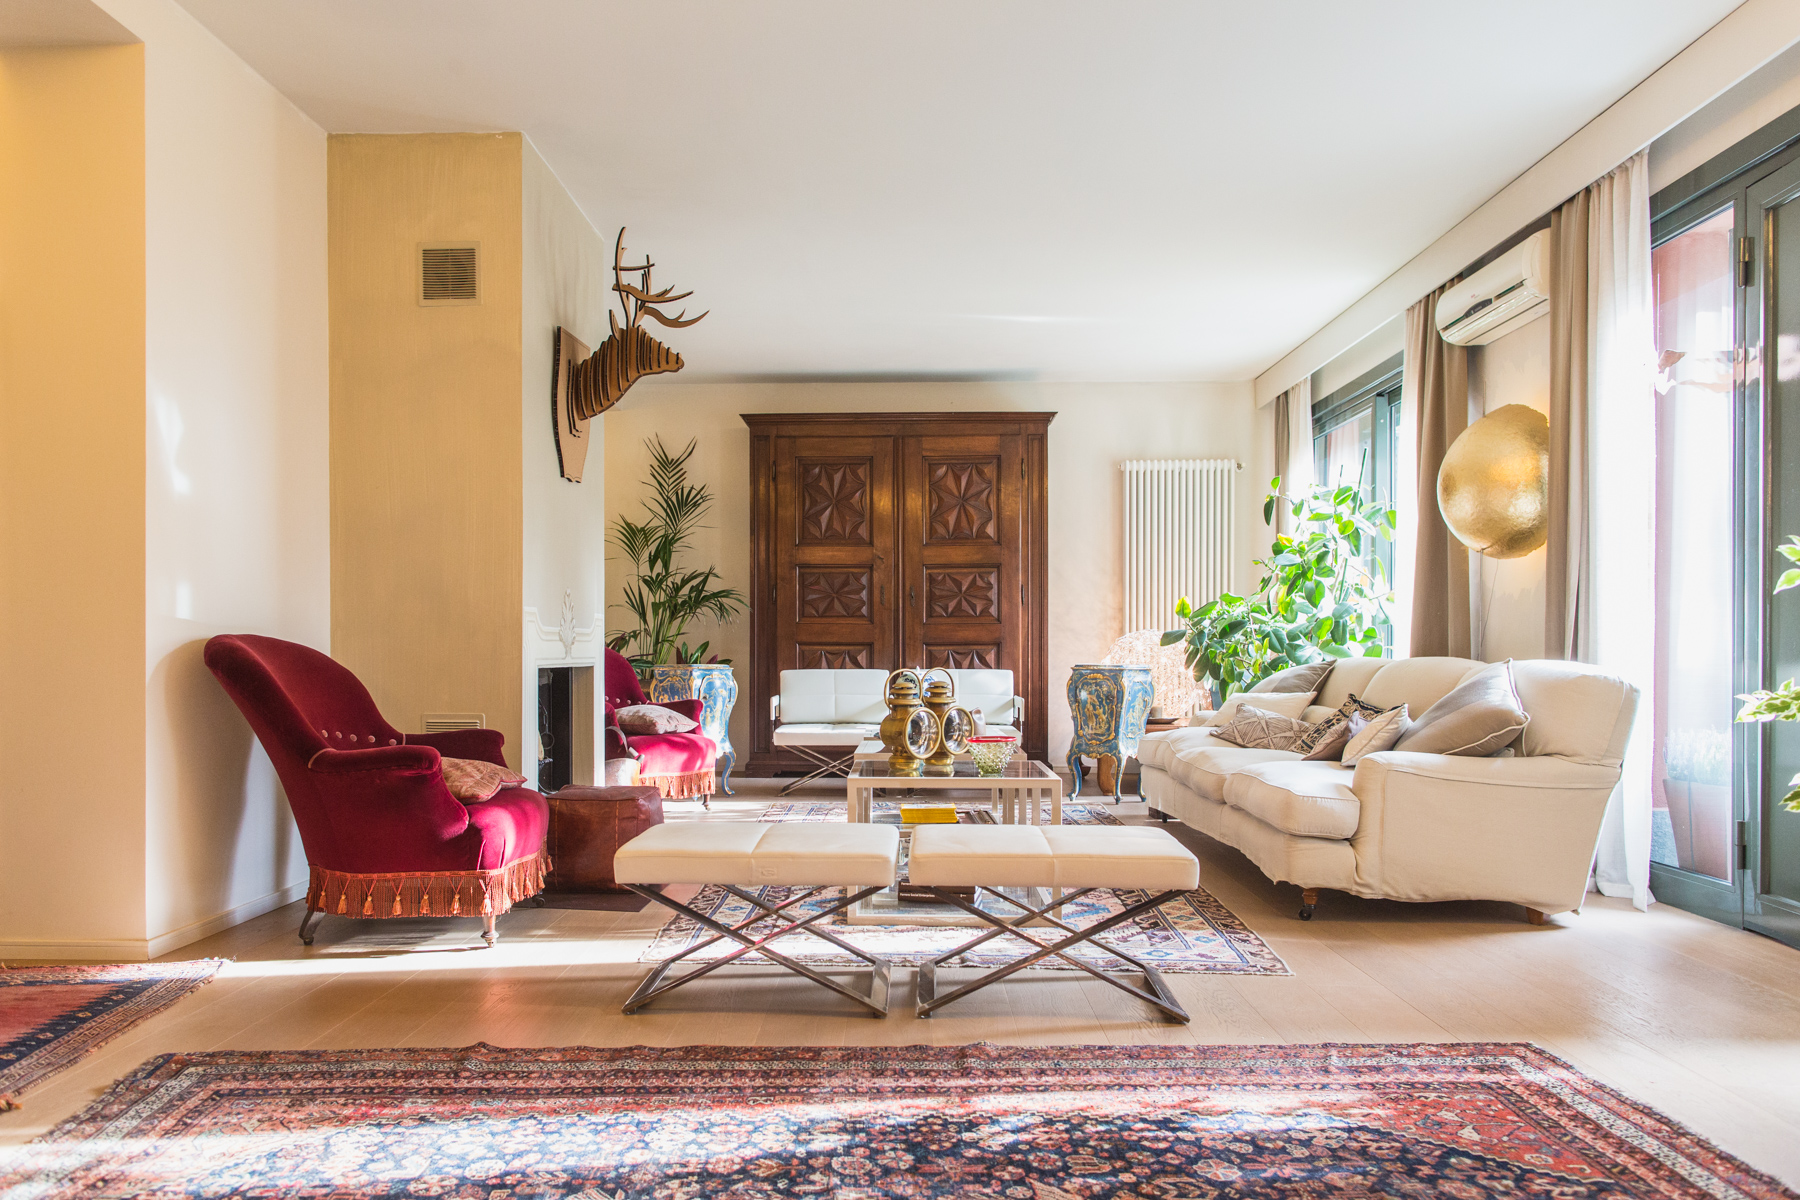 Single Family Home for Sale at Refined apartment in the pre-hill of Turin Via Luisa del Carretto Turin, 10131 Italy